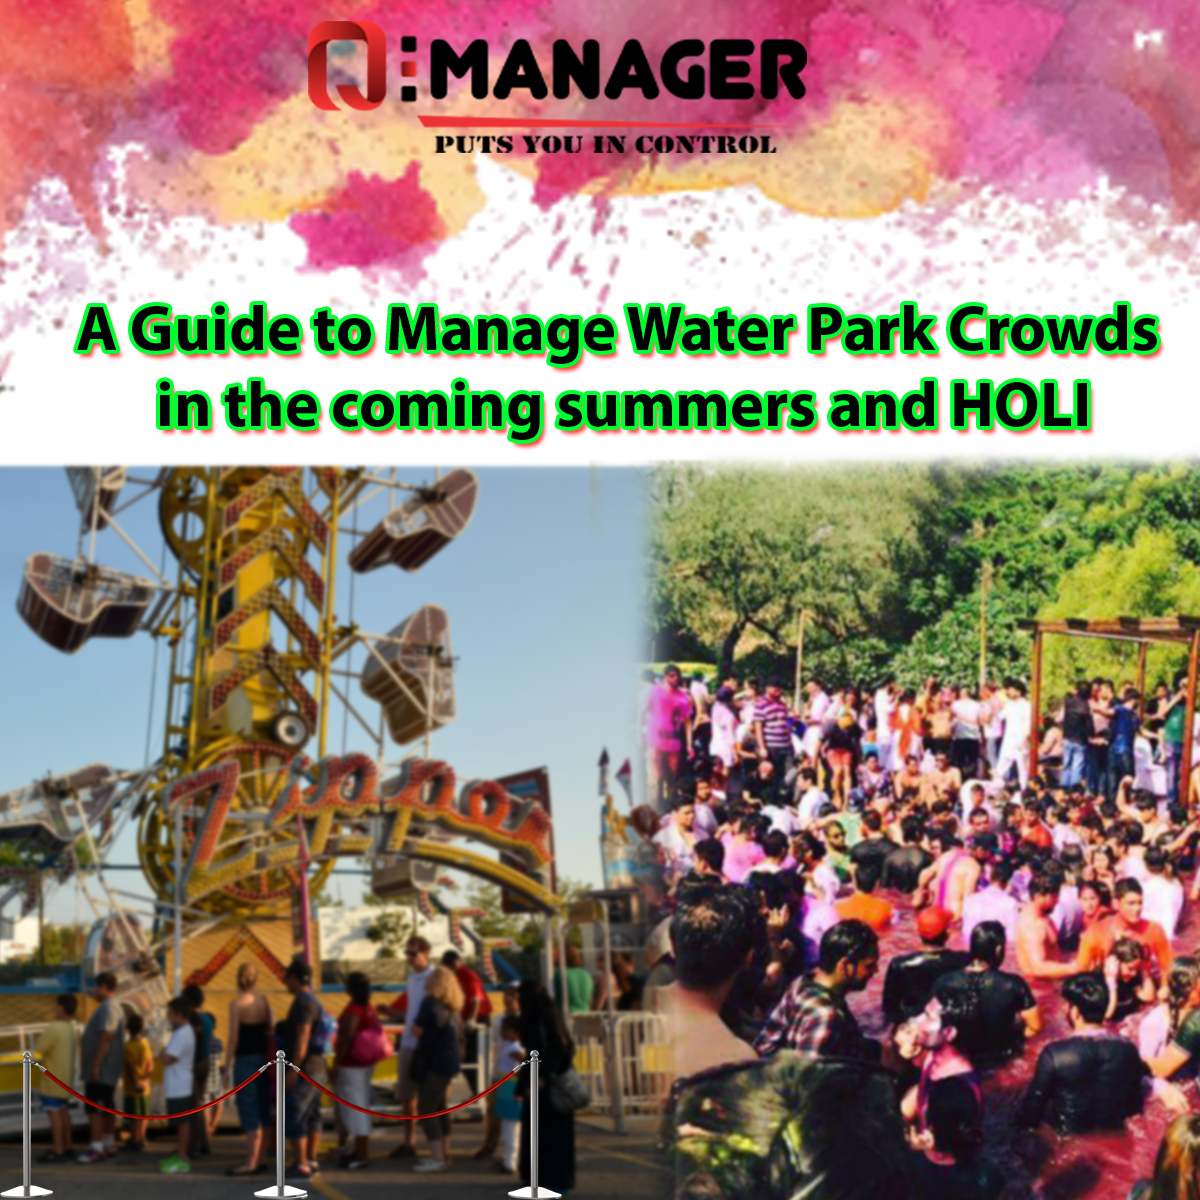 A Guide to Manage Water Park Crowds in the coming summers and HOLI